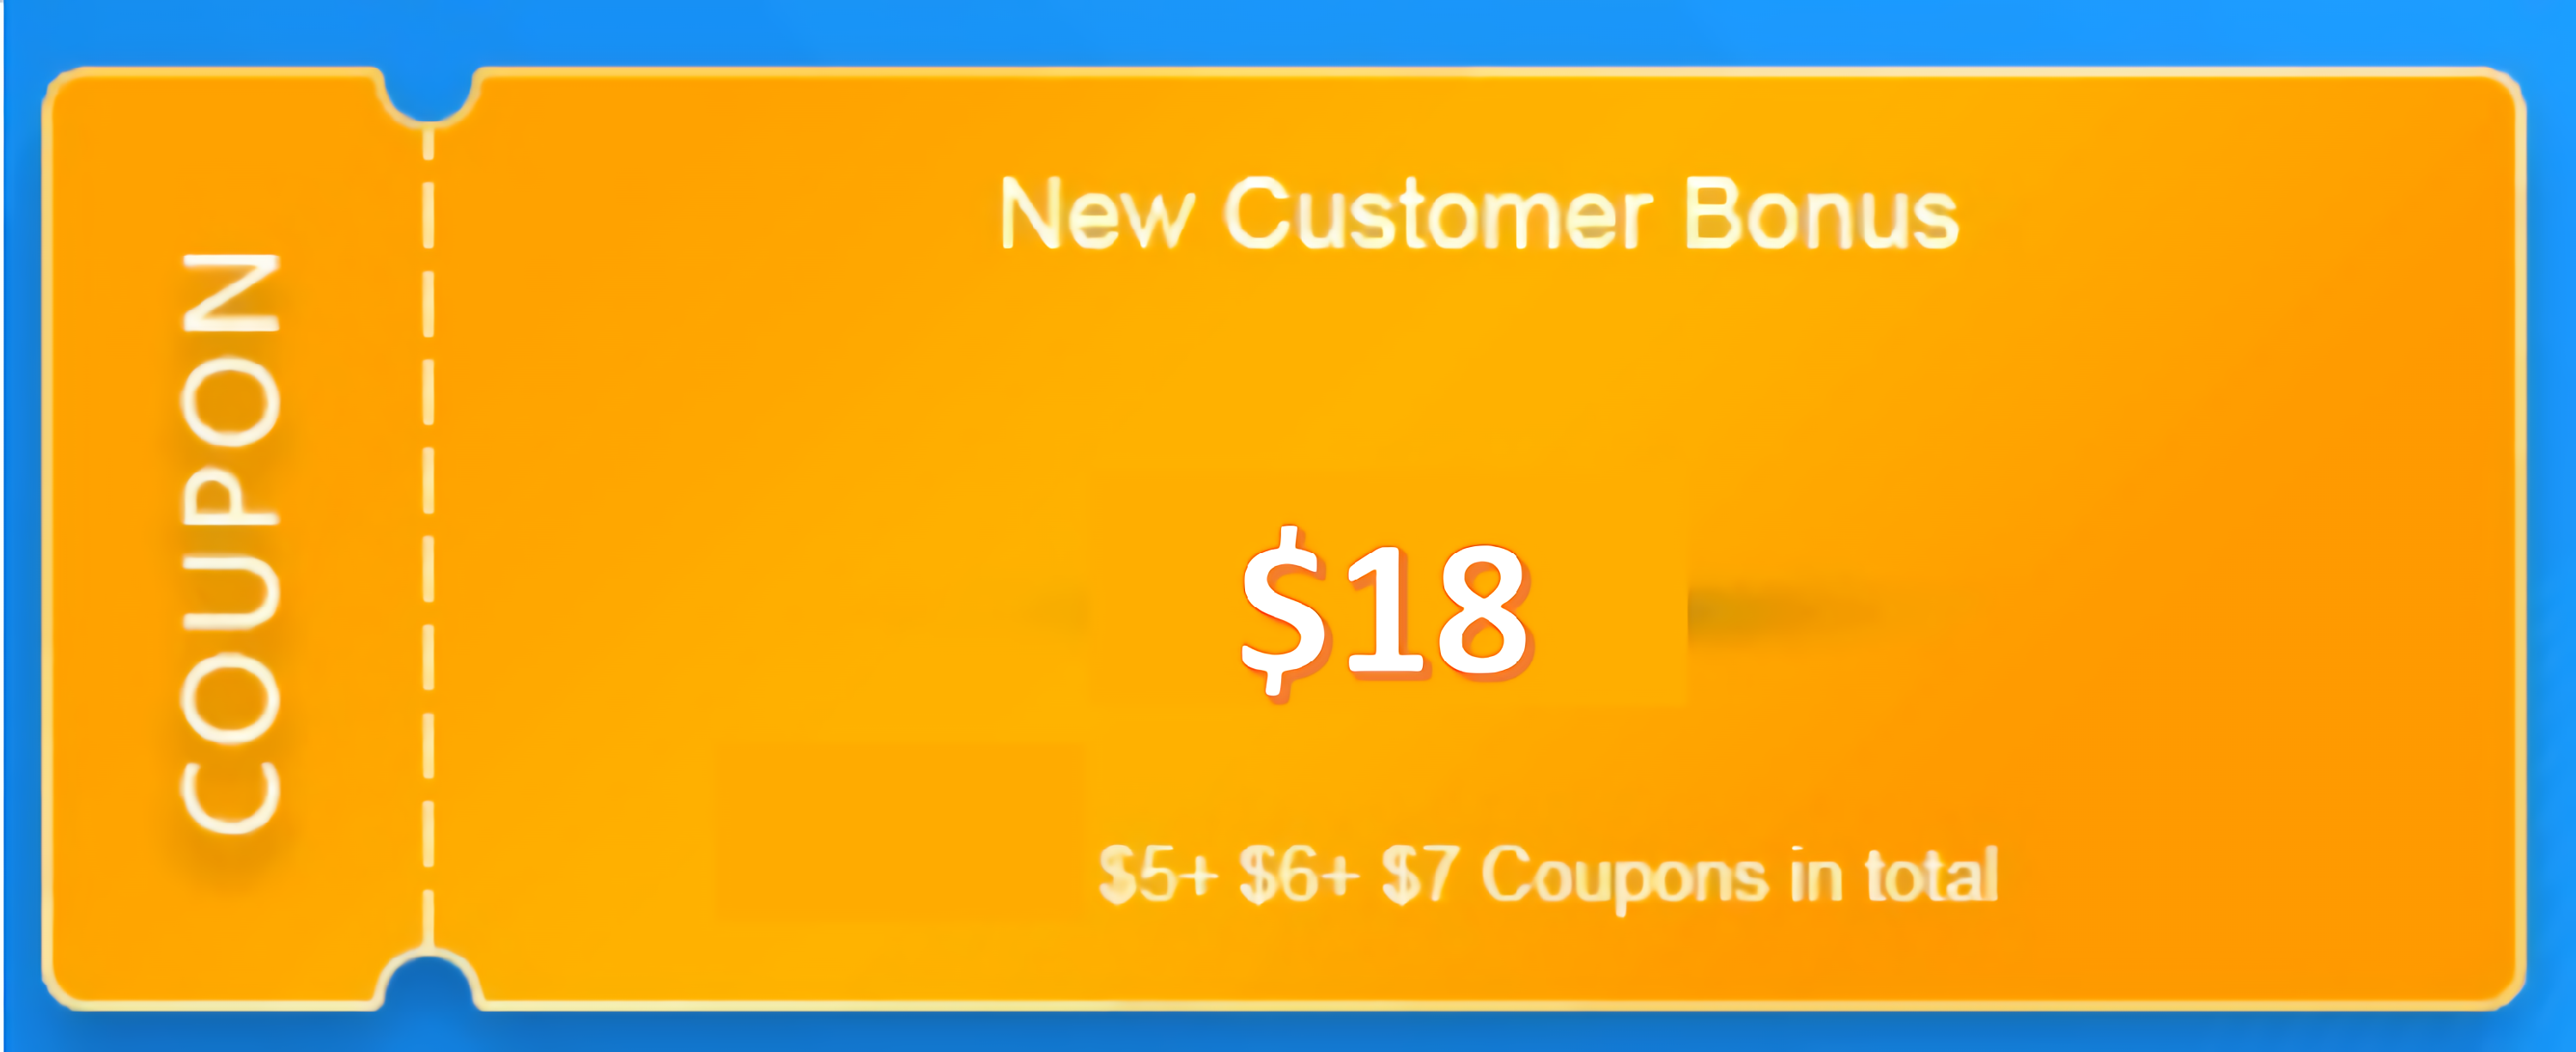 $18 coupon for new customers